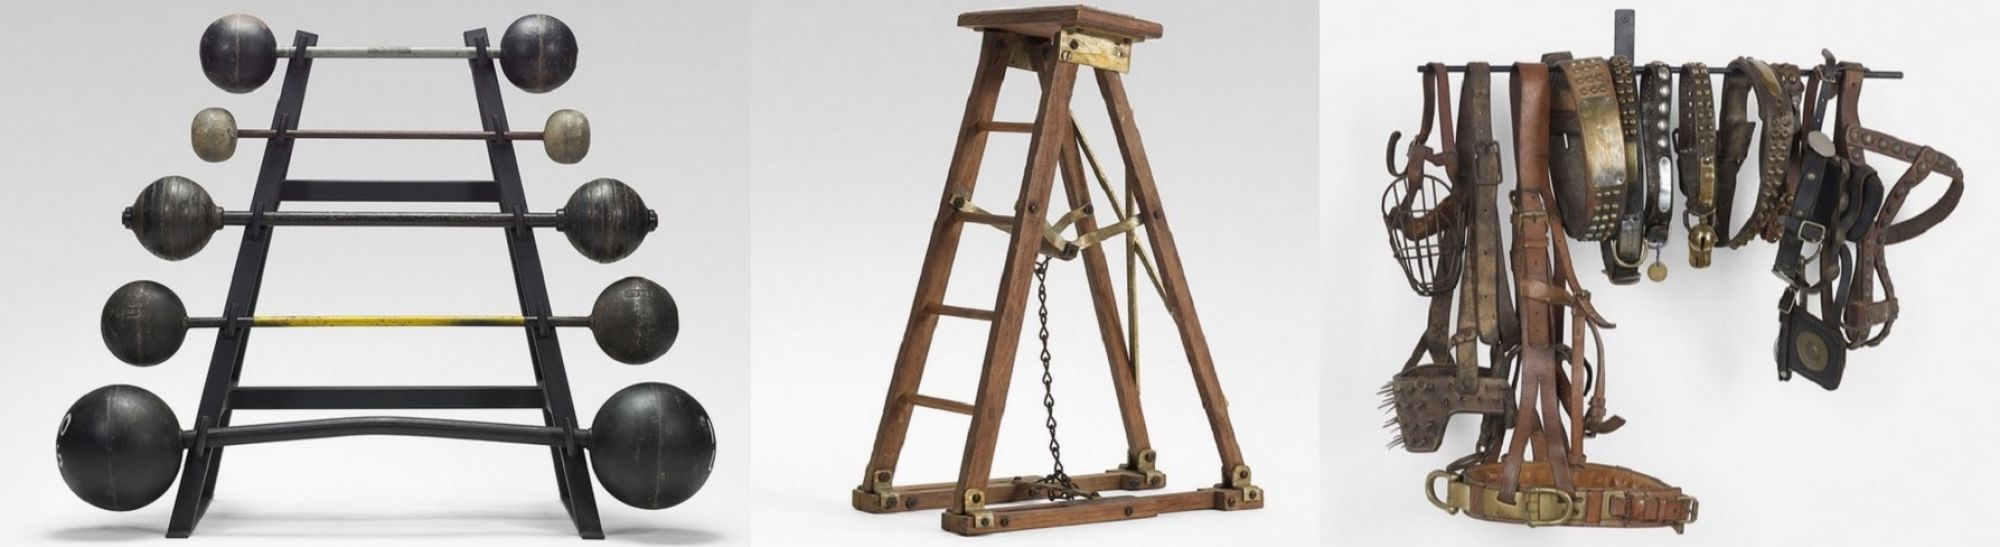 Vintage barbells on a stand, a ladder patent model from FLMACO Manufacturing, and 19th and 20th century dog collars are included in the auction.